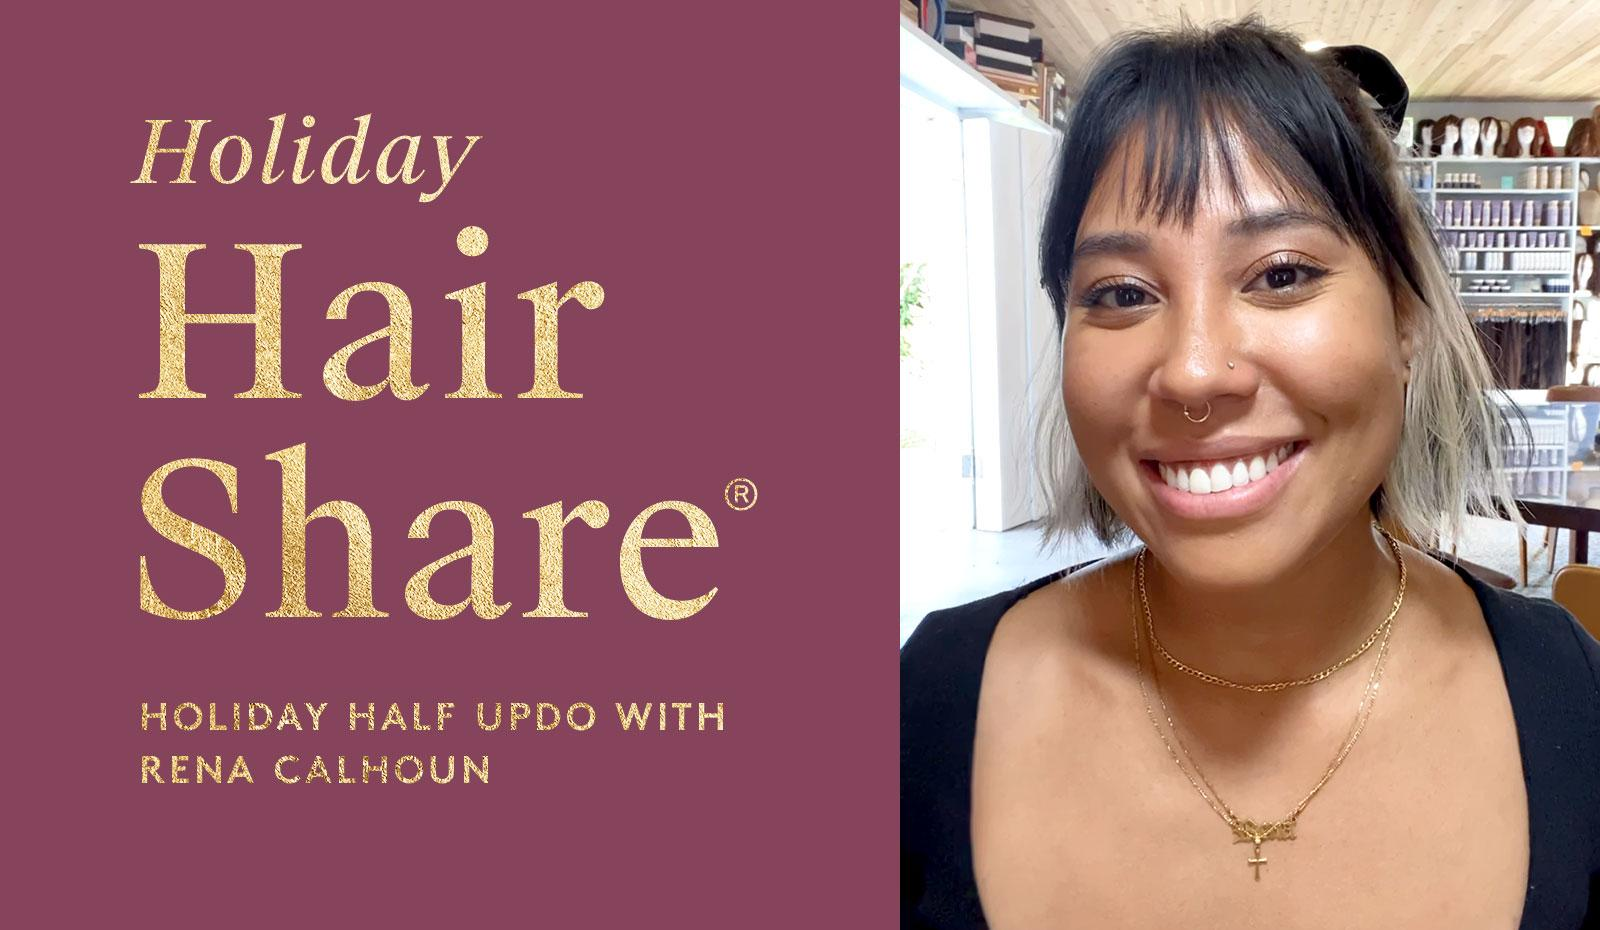 The Holiday Hair Share®: Holiday Half Updo with Rena Calhoun